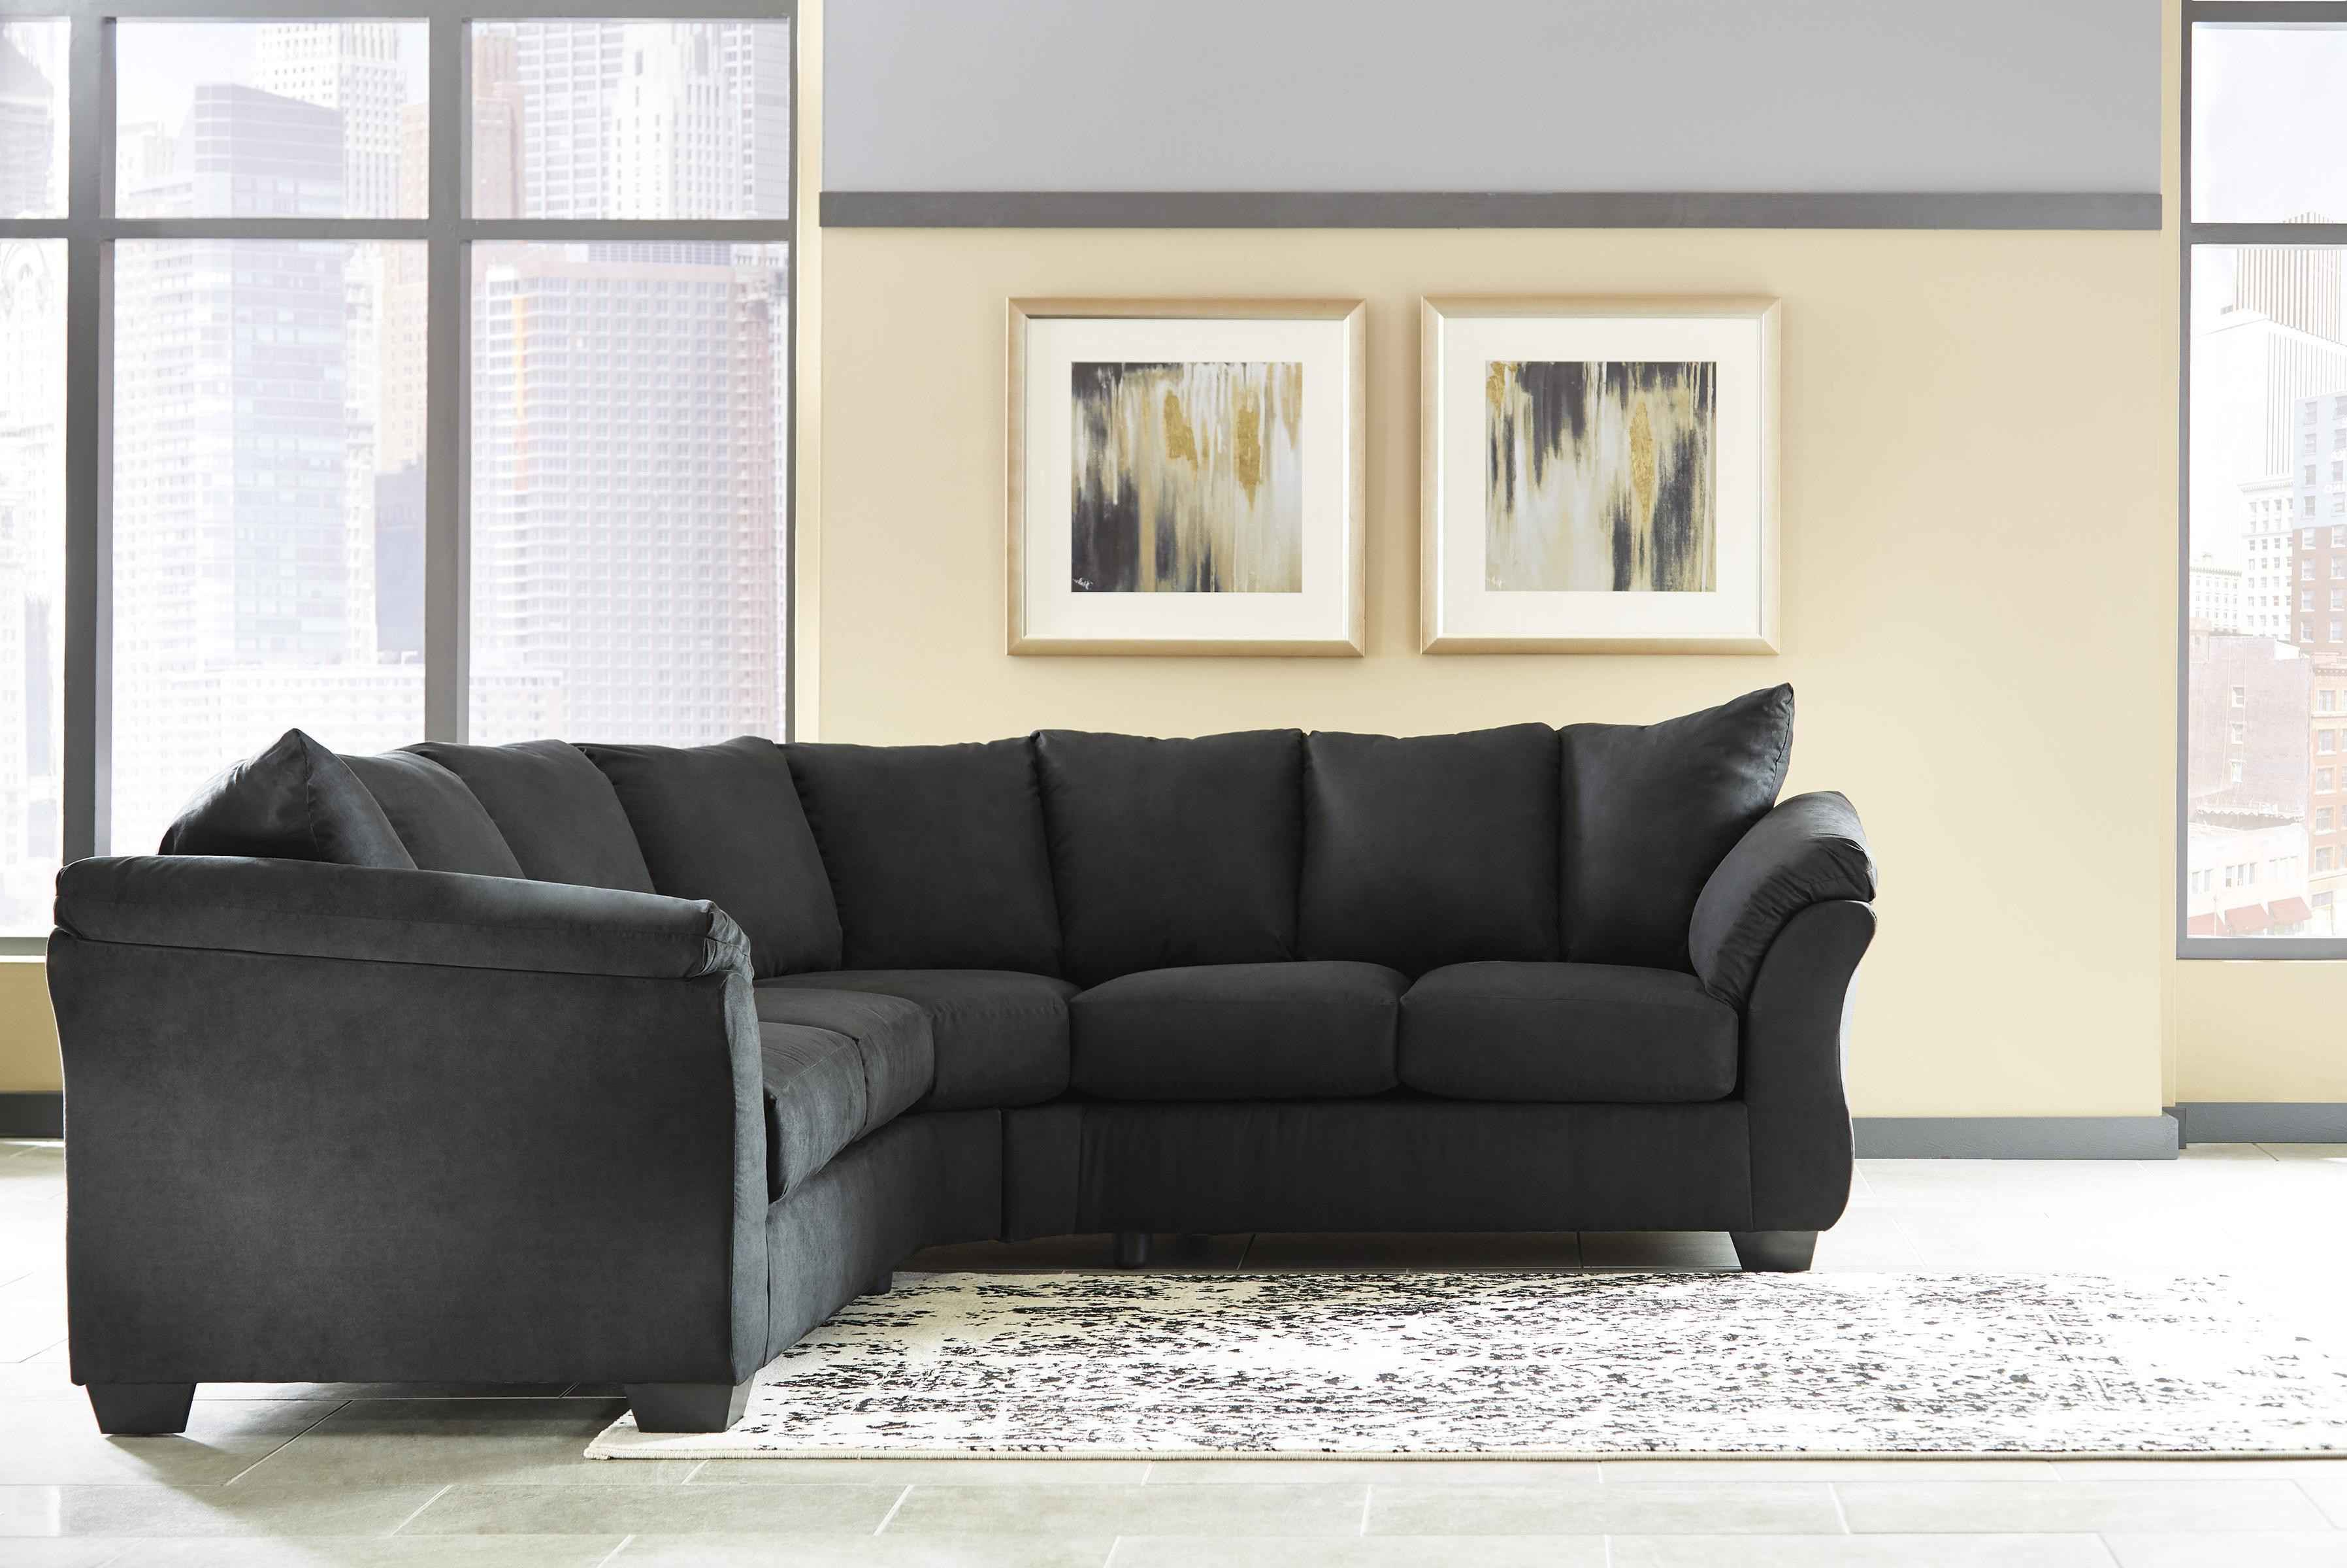 Favorite Arrowmask 2 Piece Sectionals With Laf Chaise Pertaining To 50 Awesome Collection Of Grey Couch With Chaise (View 14 of 20)